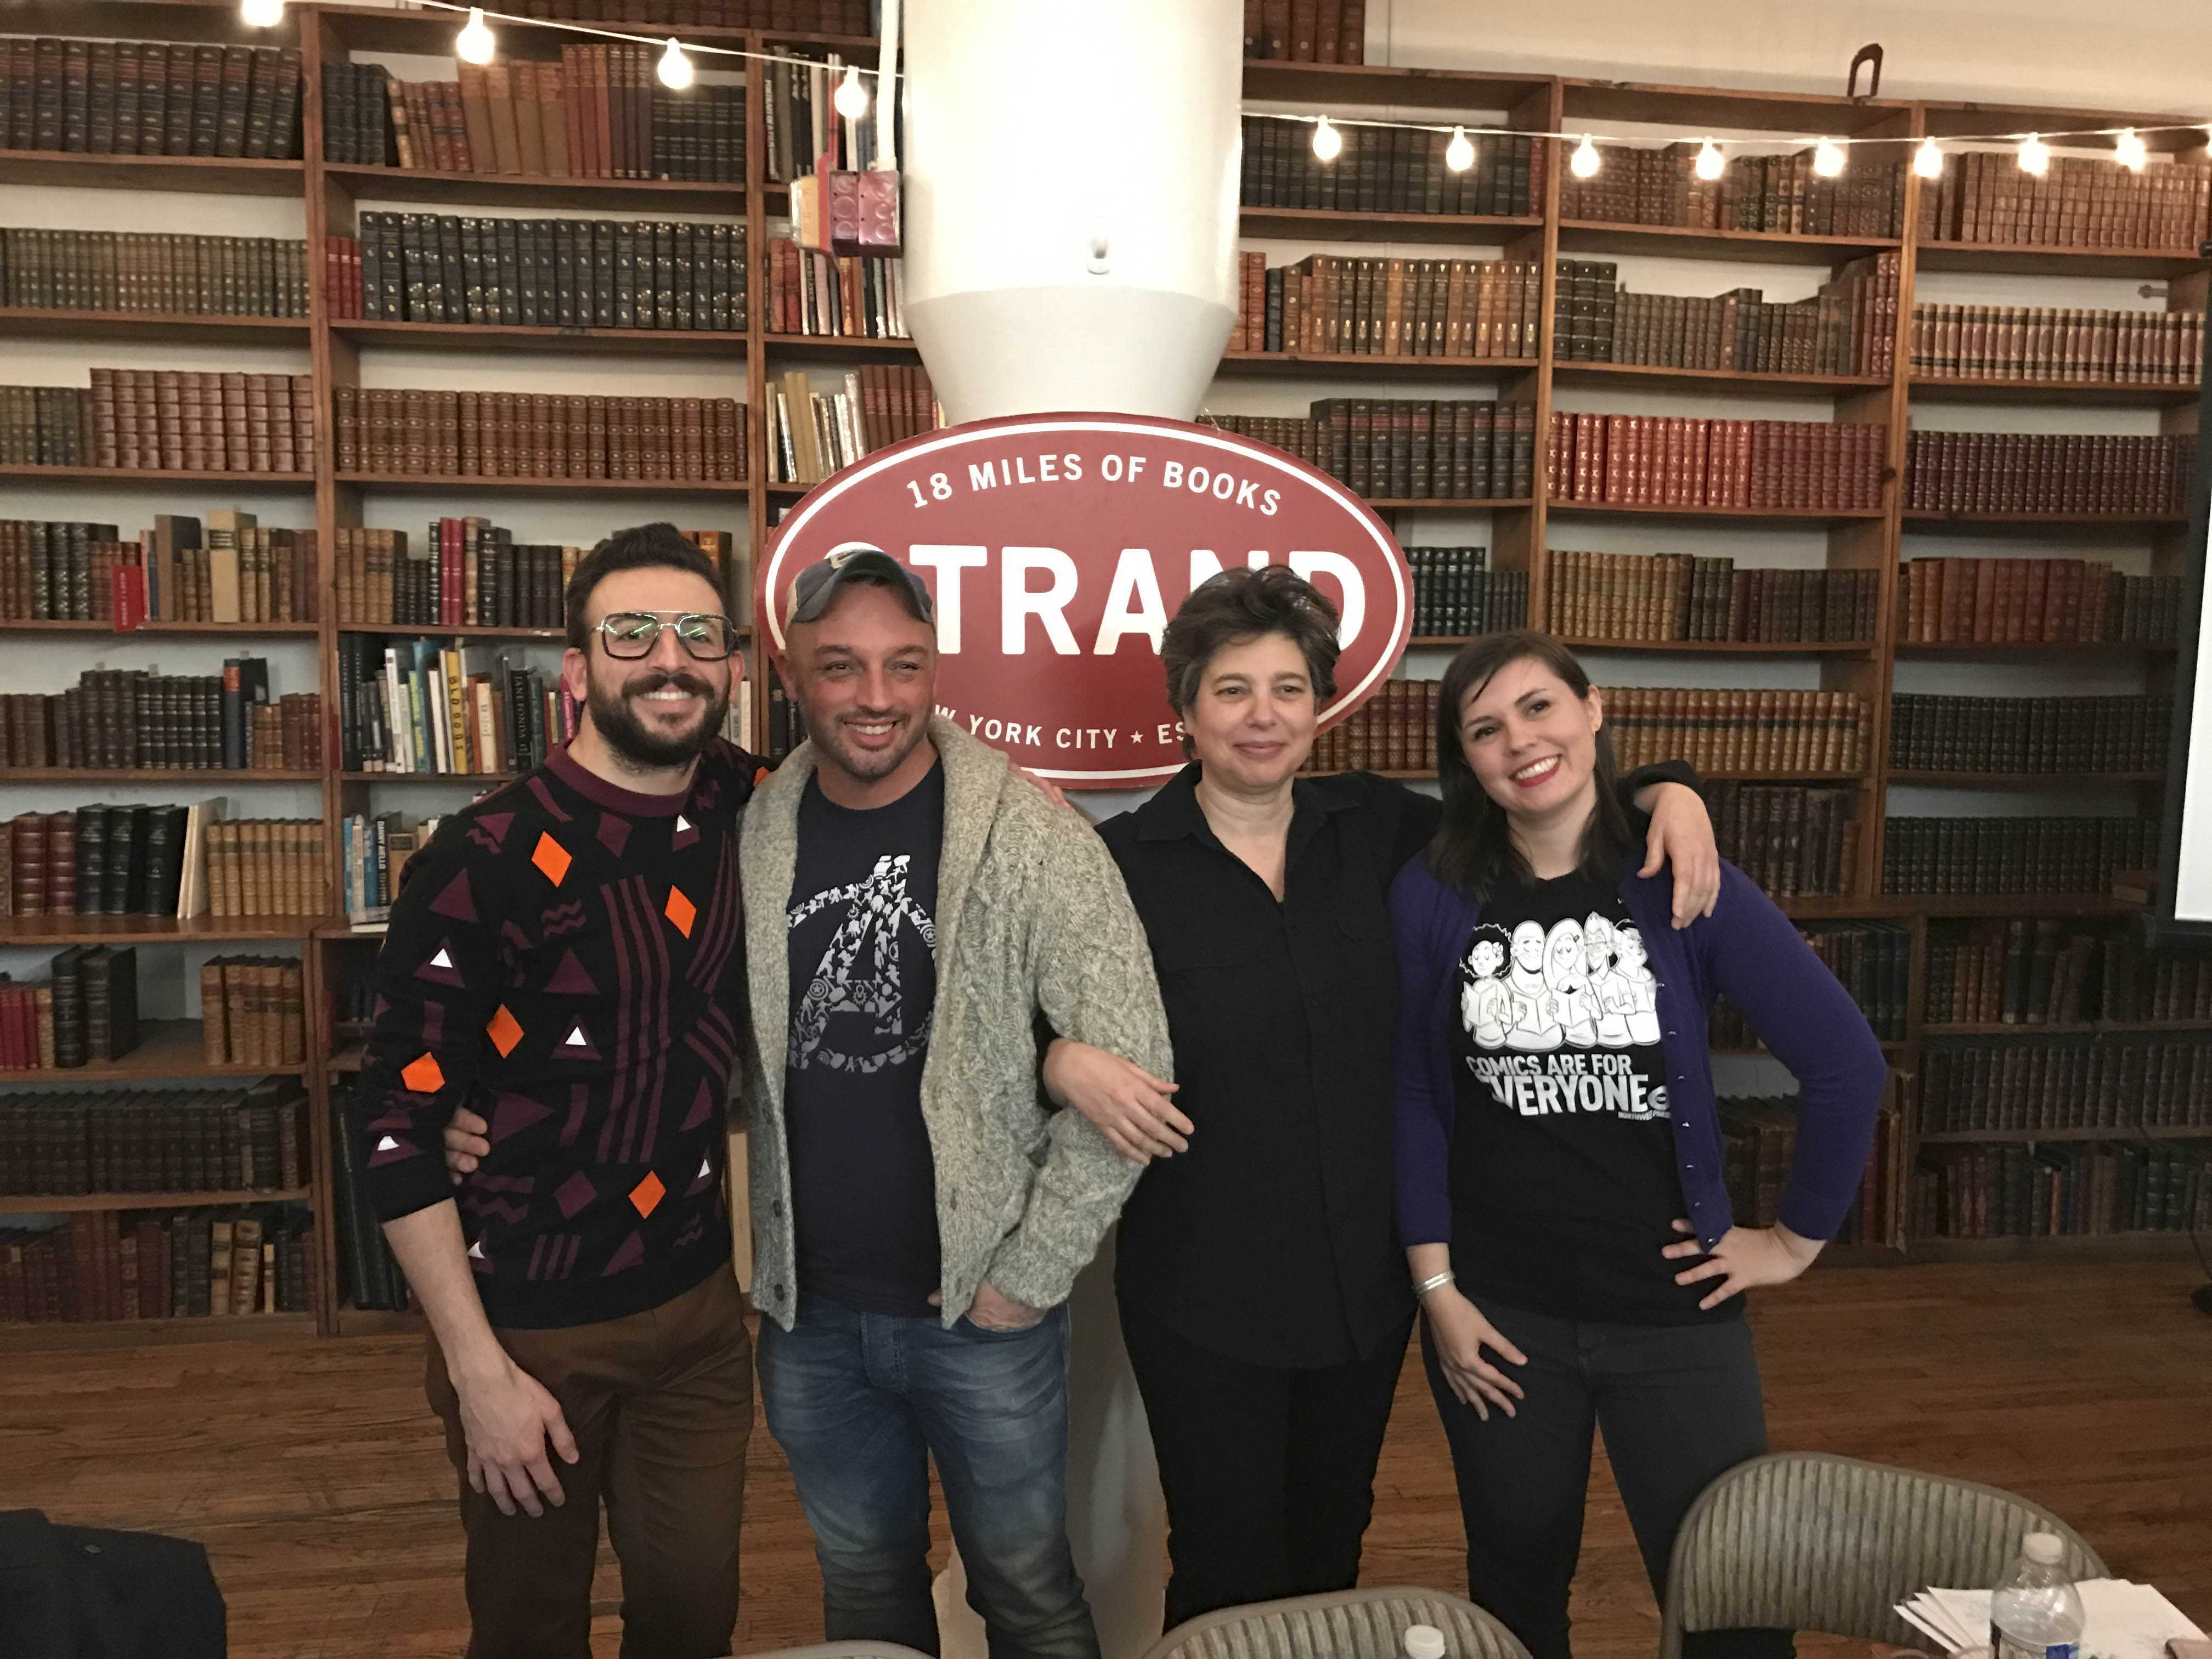 From left to right, Phil Jimenez, Ramzi Fawaz, Jennifer Camper and Margaret Galvan joined the panel hosted in Strand to discuss LGBTQ representation in the comic industry. The panel occurred on March 22.